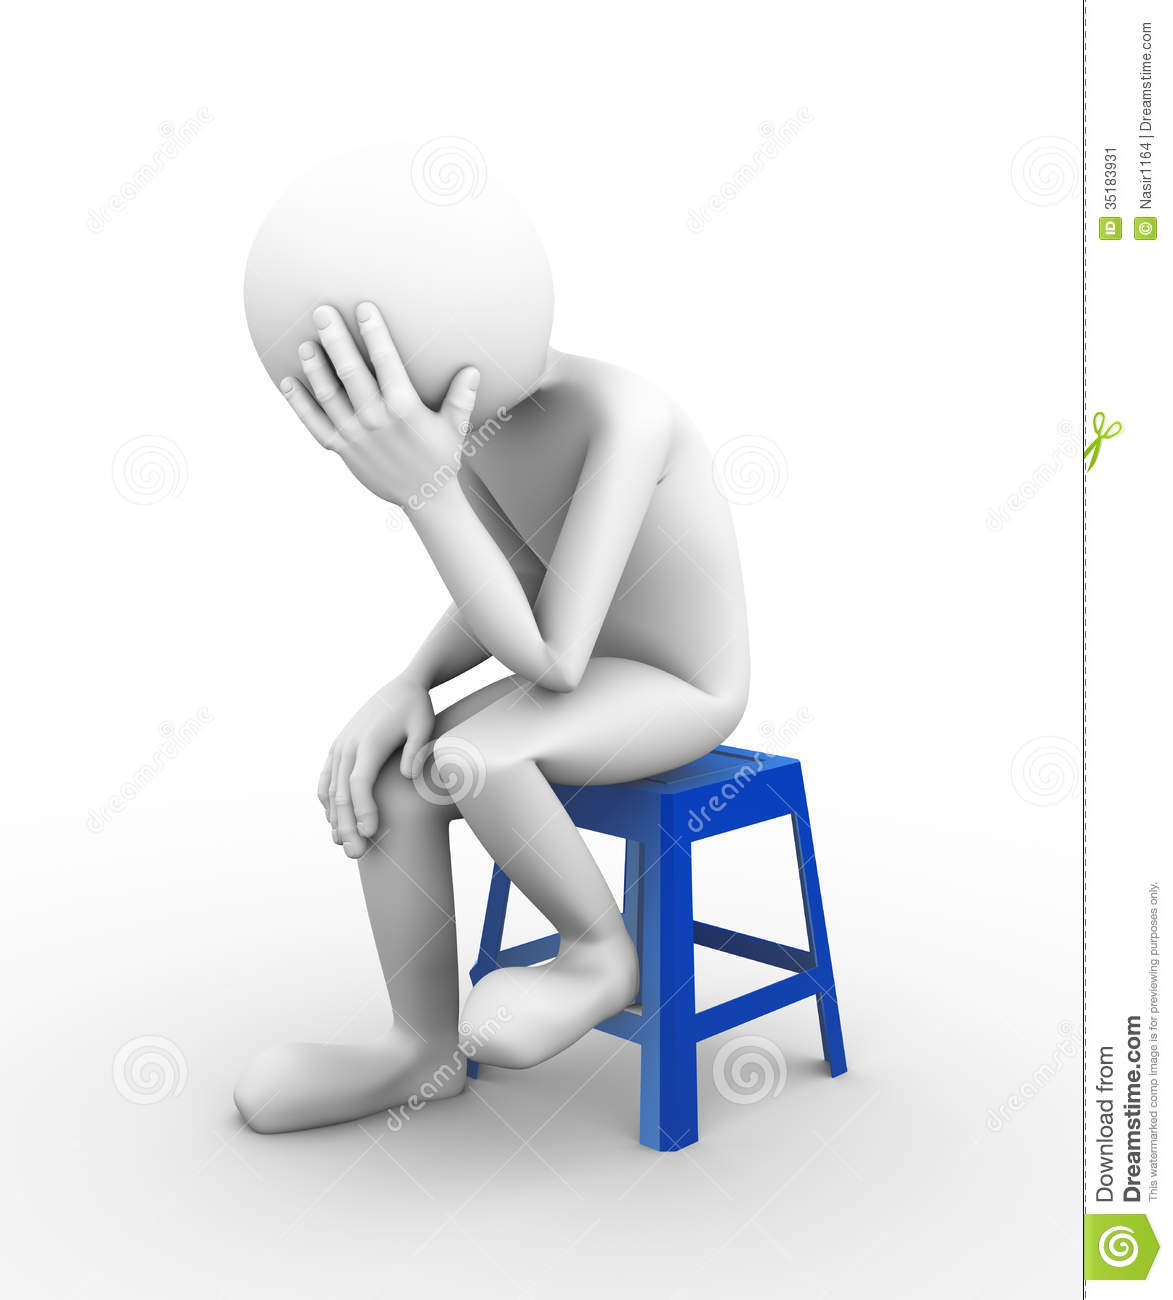 3d Rendering Of Frustrated Sad Depressed Man Sitting On Plastic Stool